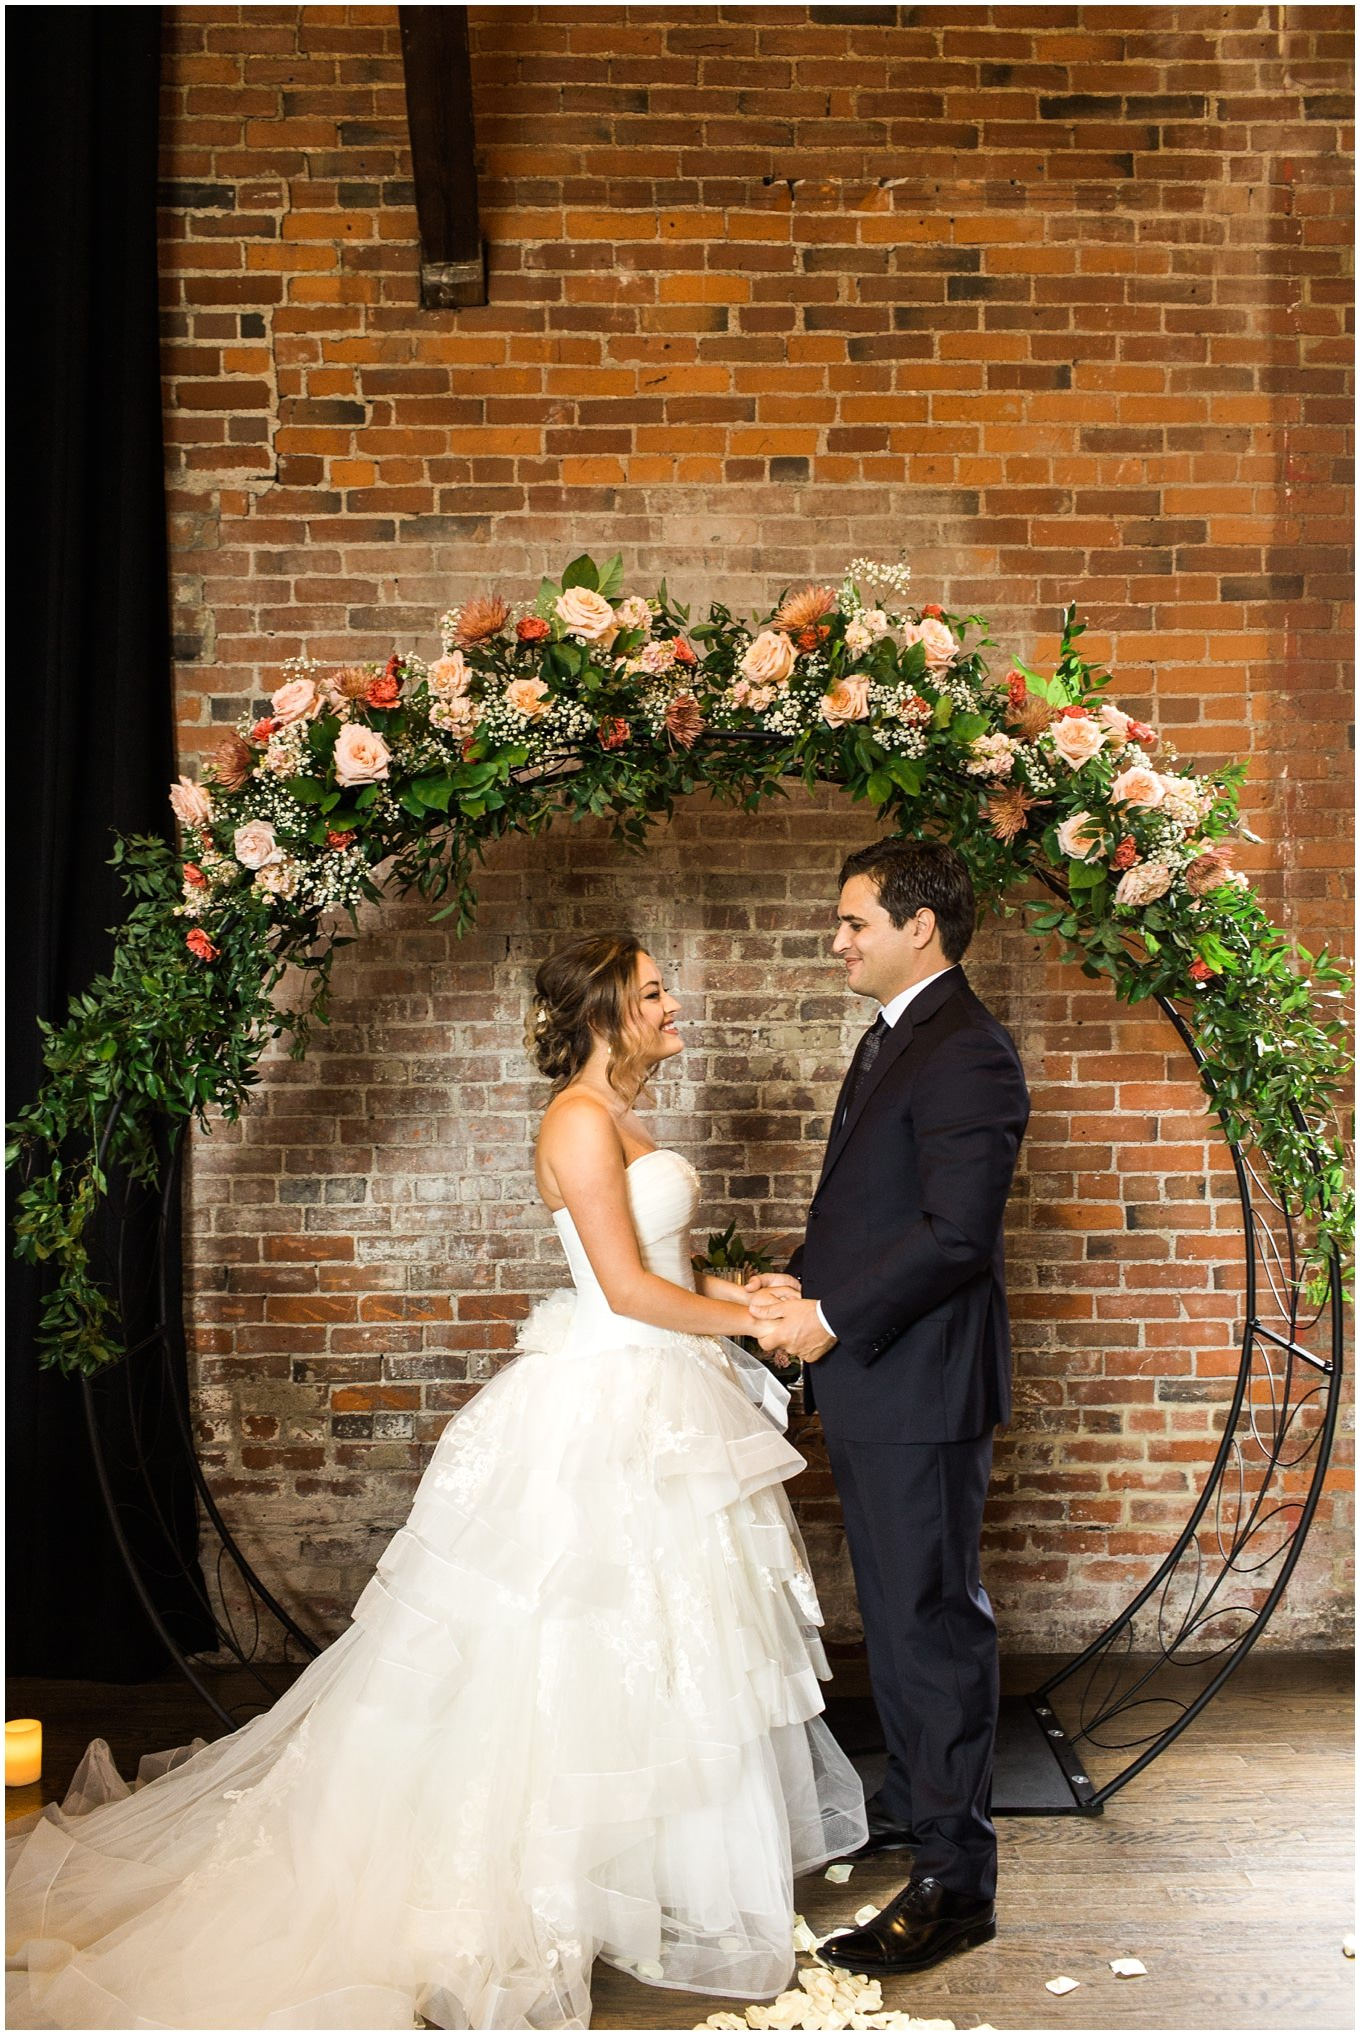 Adam Lowe Photography, The Higline Carhouse, The High Line Car House, Vera Wang, Wedding, Columbus, Ohio, Wedding Photography, Johnny Appleweed, Petals and Leaves floral,